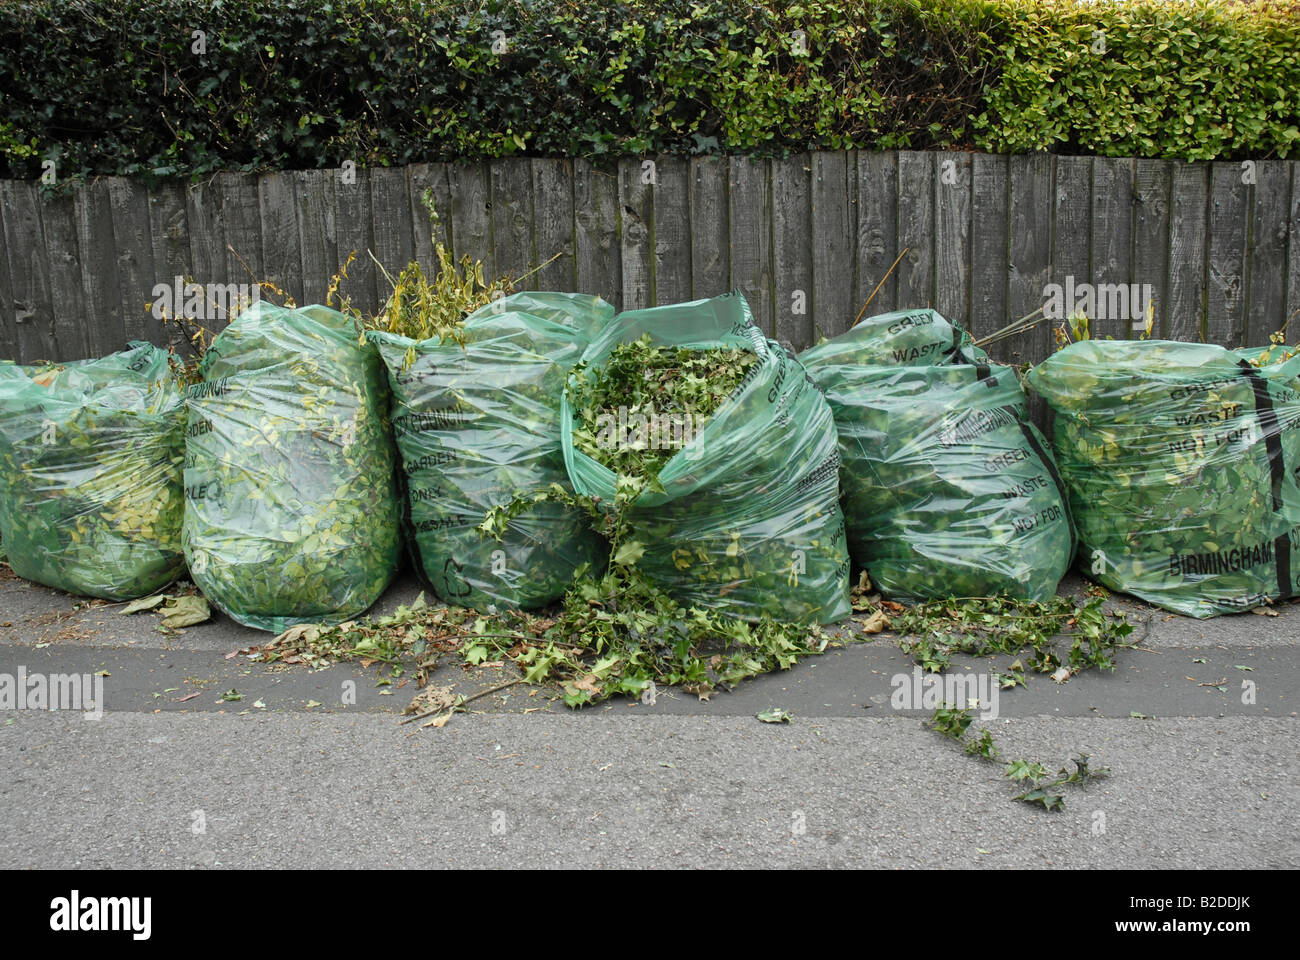 waste environment green garden council bags recycle hedge cuttings trim grass lawn rubbish collection collect suburban - Stock Image